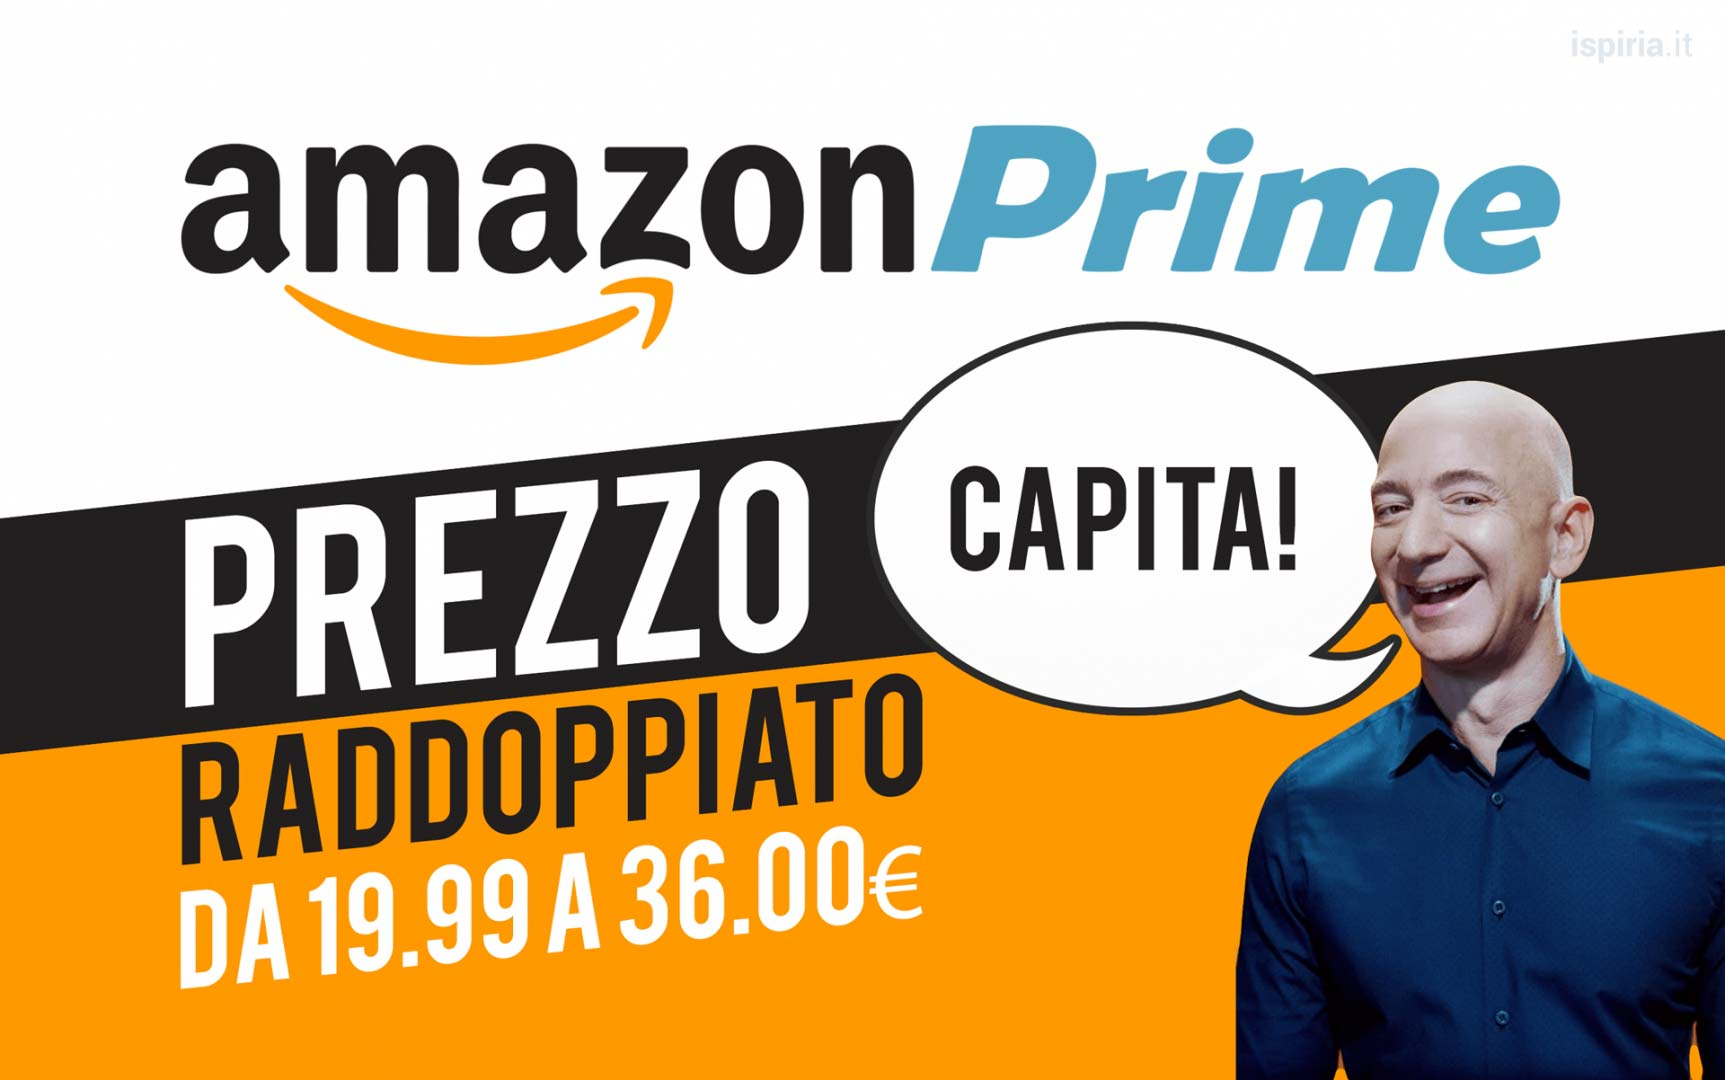 Aumento-prezzo-amazon-prime-jeff-bezos